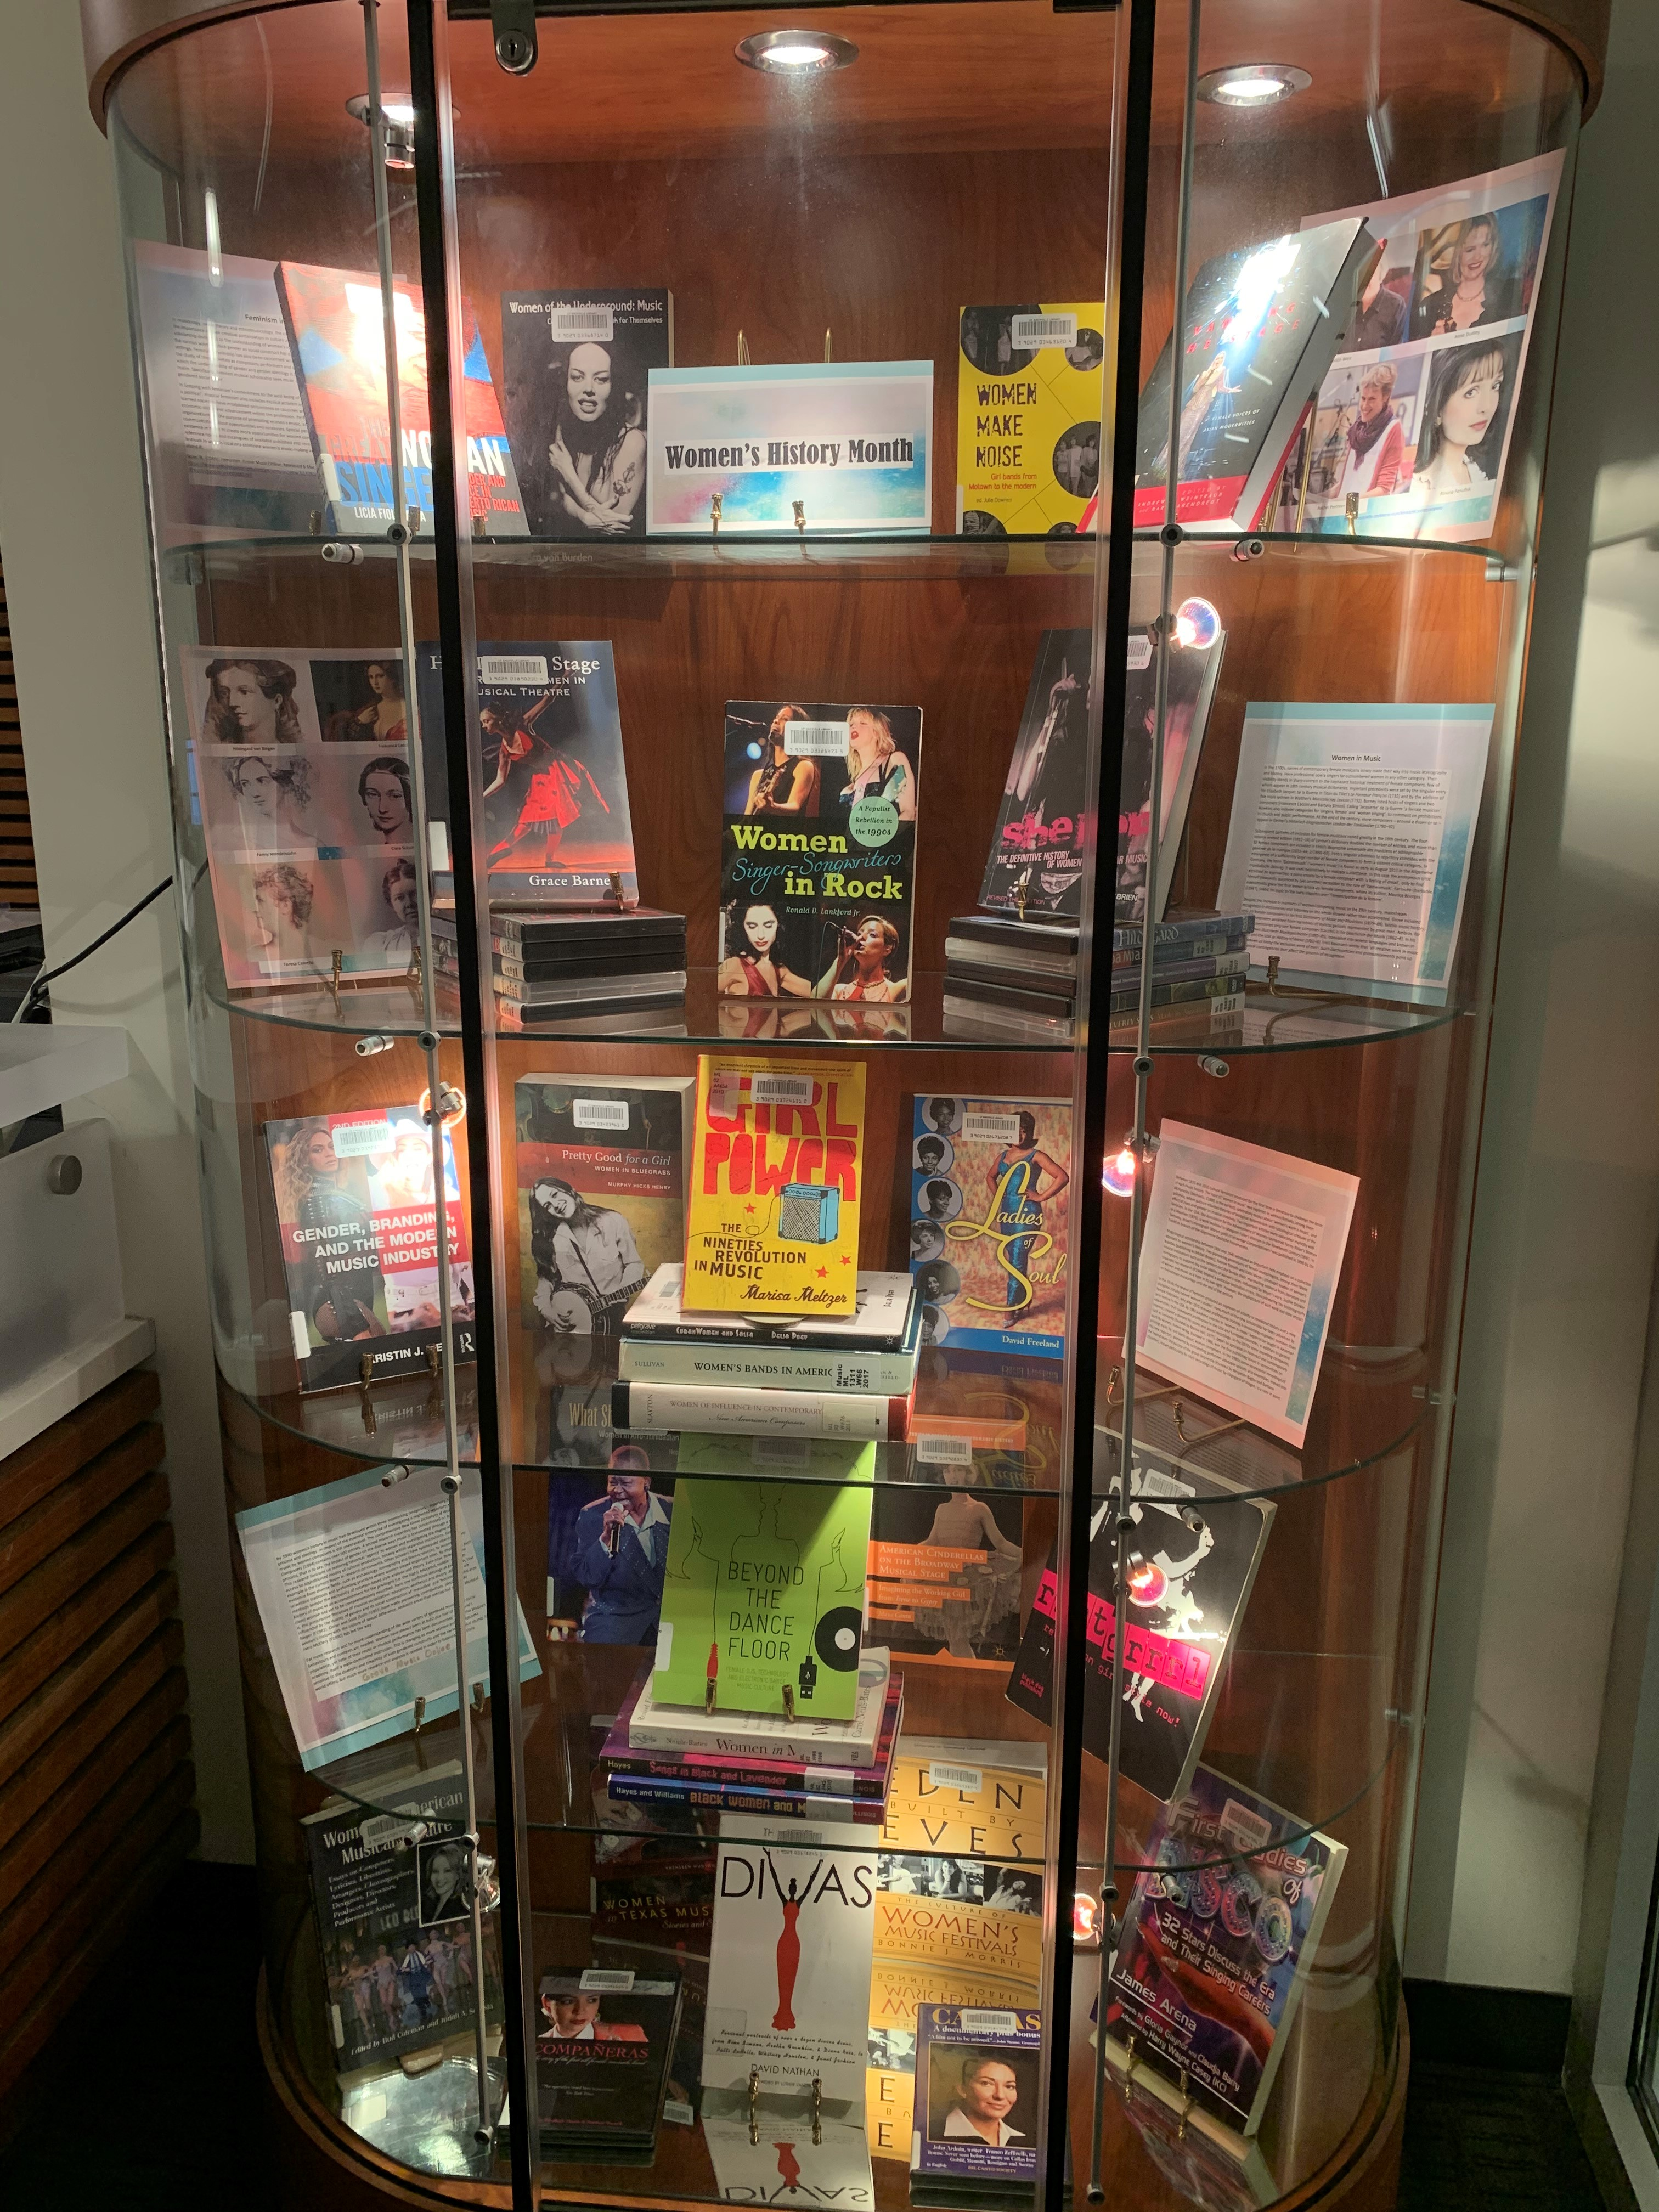 DeVine Display Case featuring Women's History Month materials